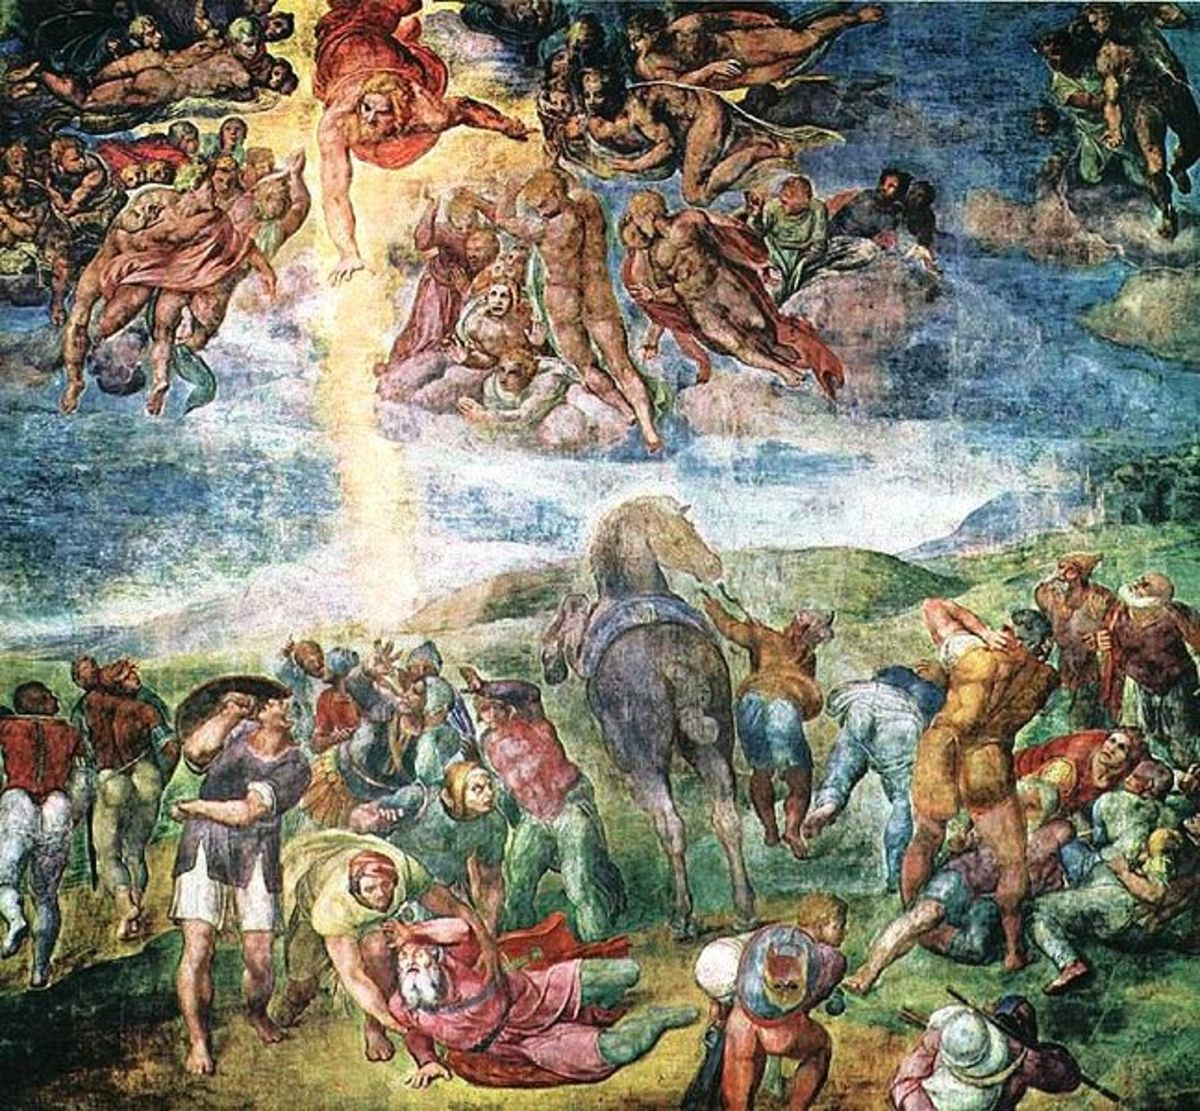 'The Conversion of St. Paul' by Michelangelo Buonarroti